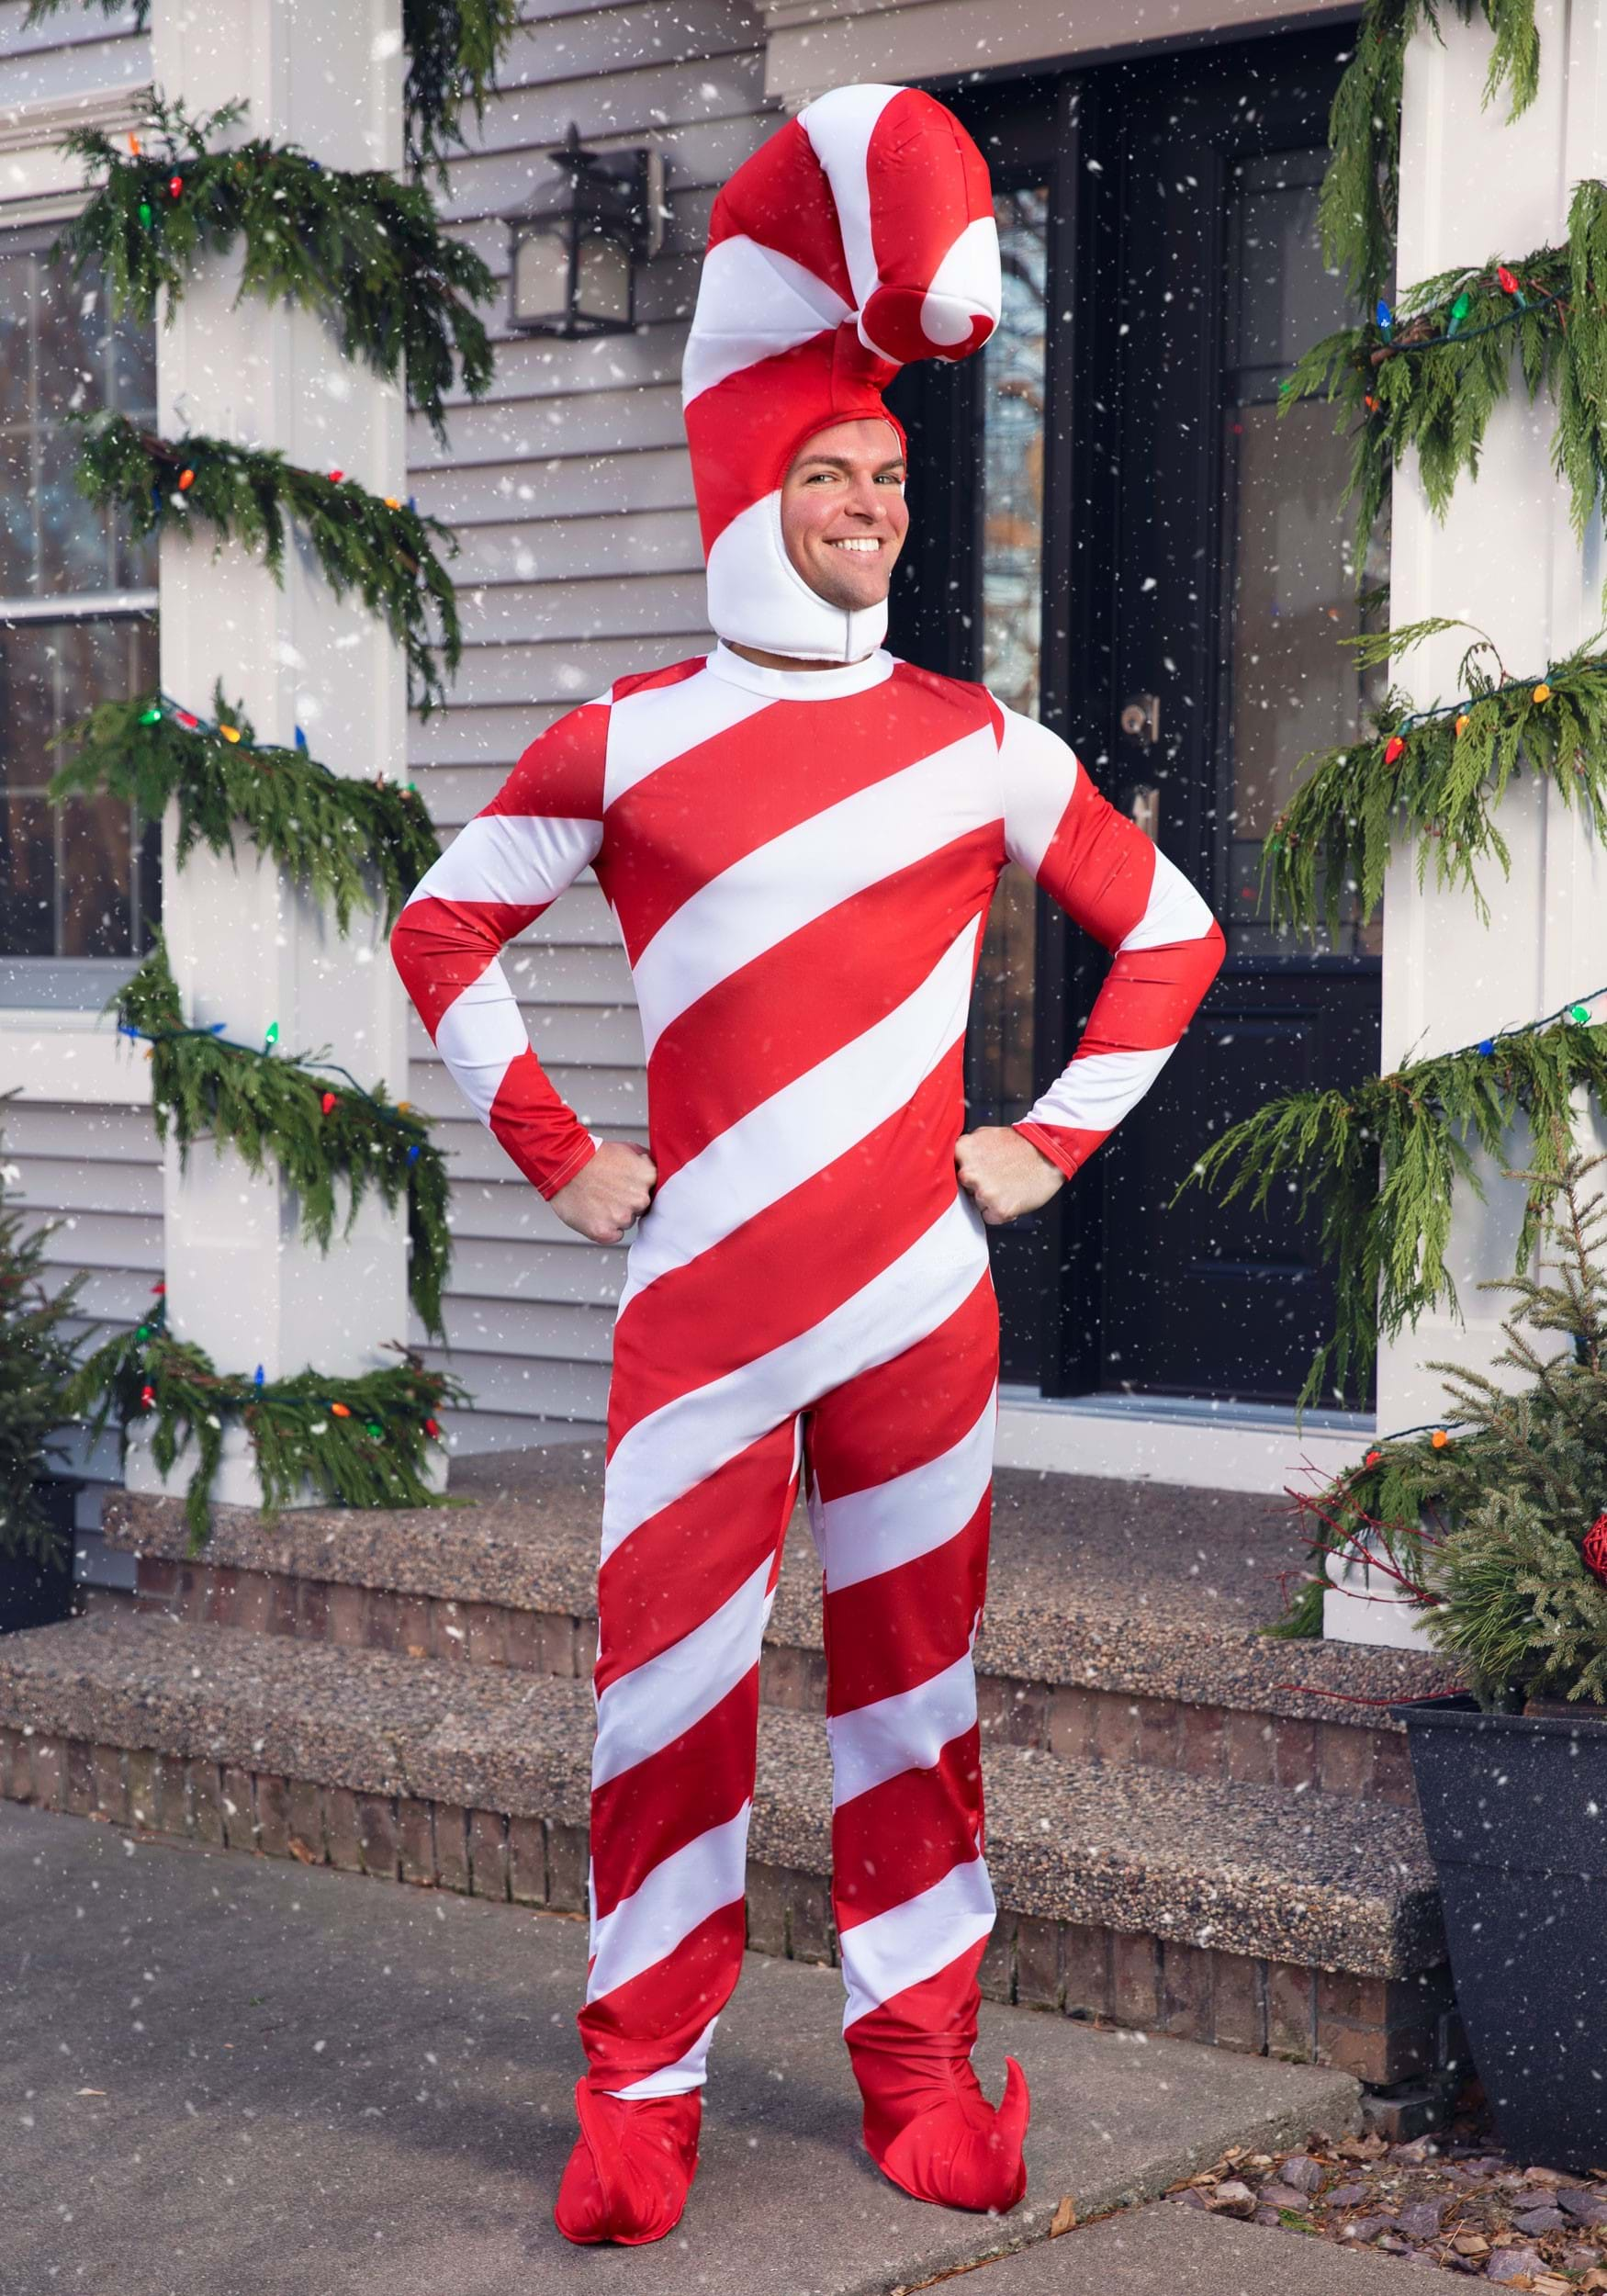 White Red Striped Light Up Candy Cane Striped Cap Elf Christmas Adult Costume